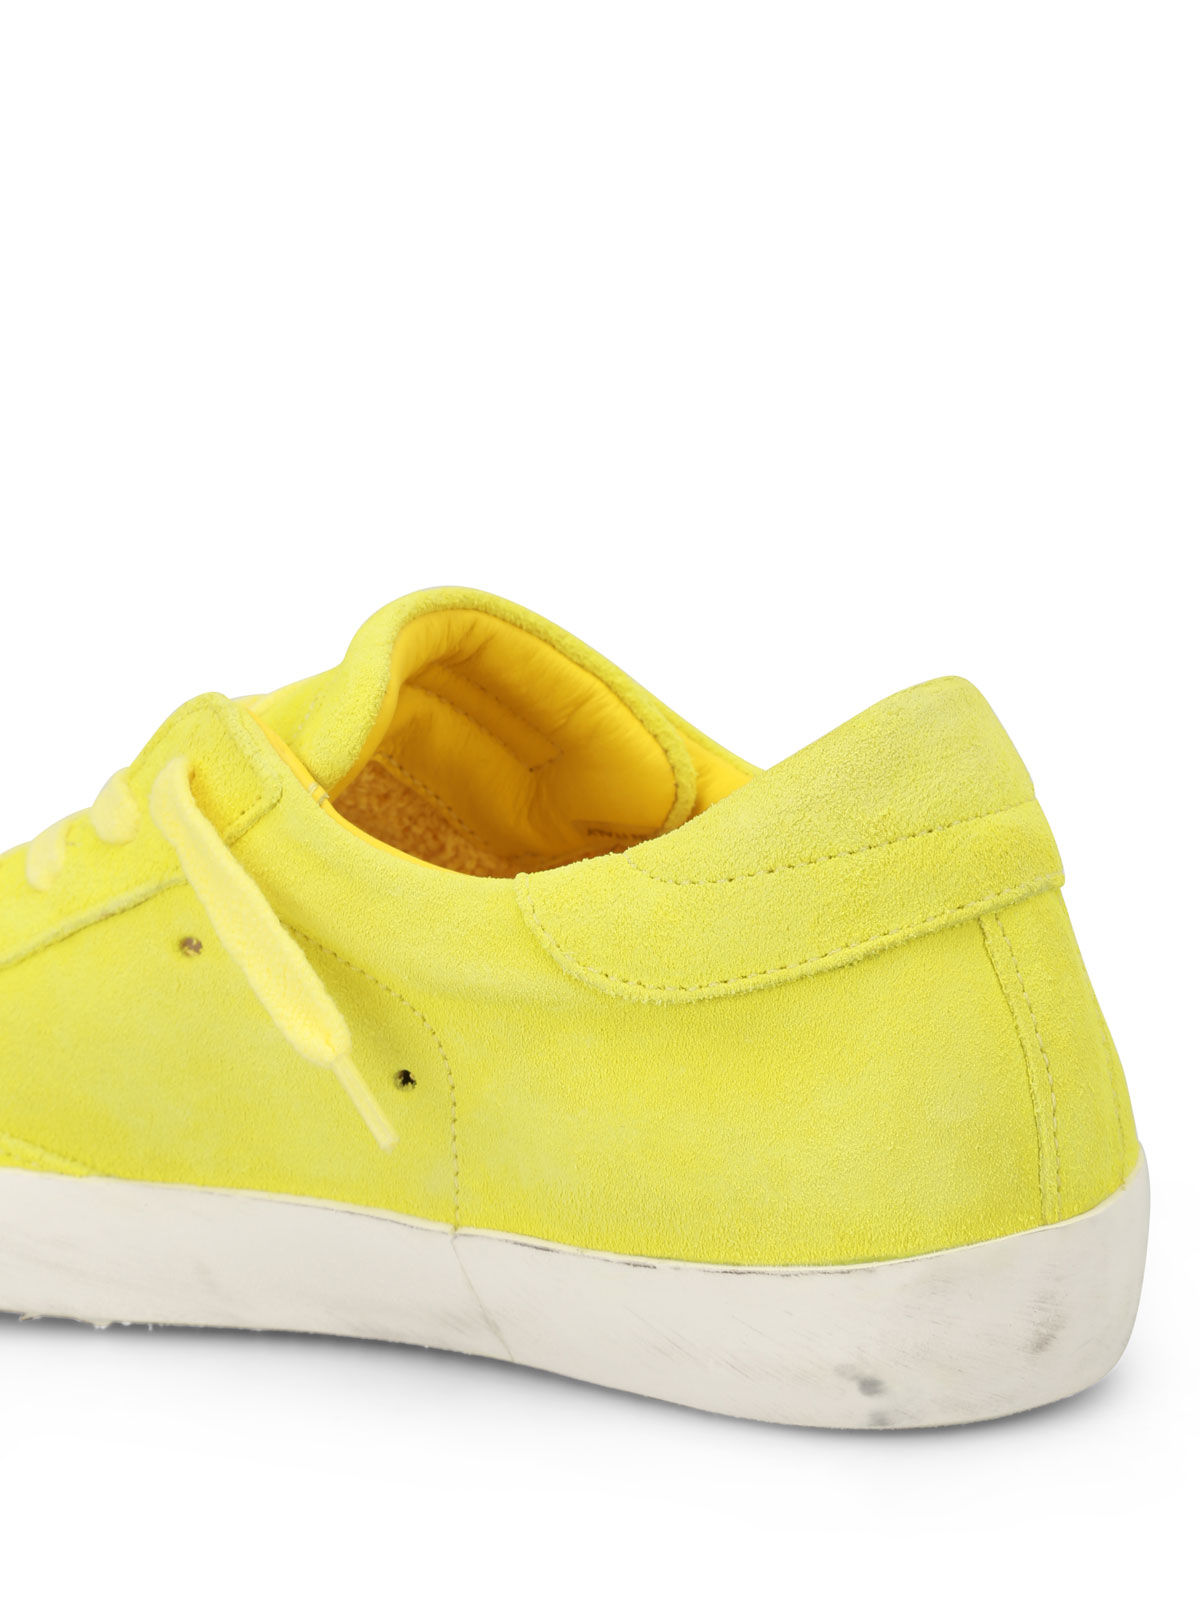 Philippe model PARIS AND FLUO YELLOW LEATHER SNEAKERS women's Shoes (Trainers) in Big Discount Discount Ebay Fb1GTEE6P